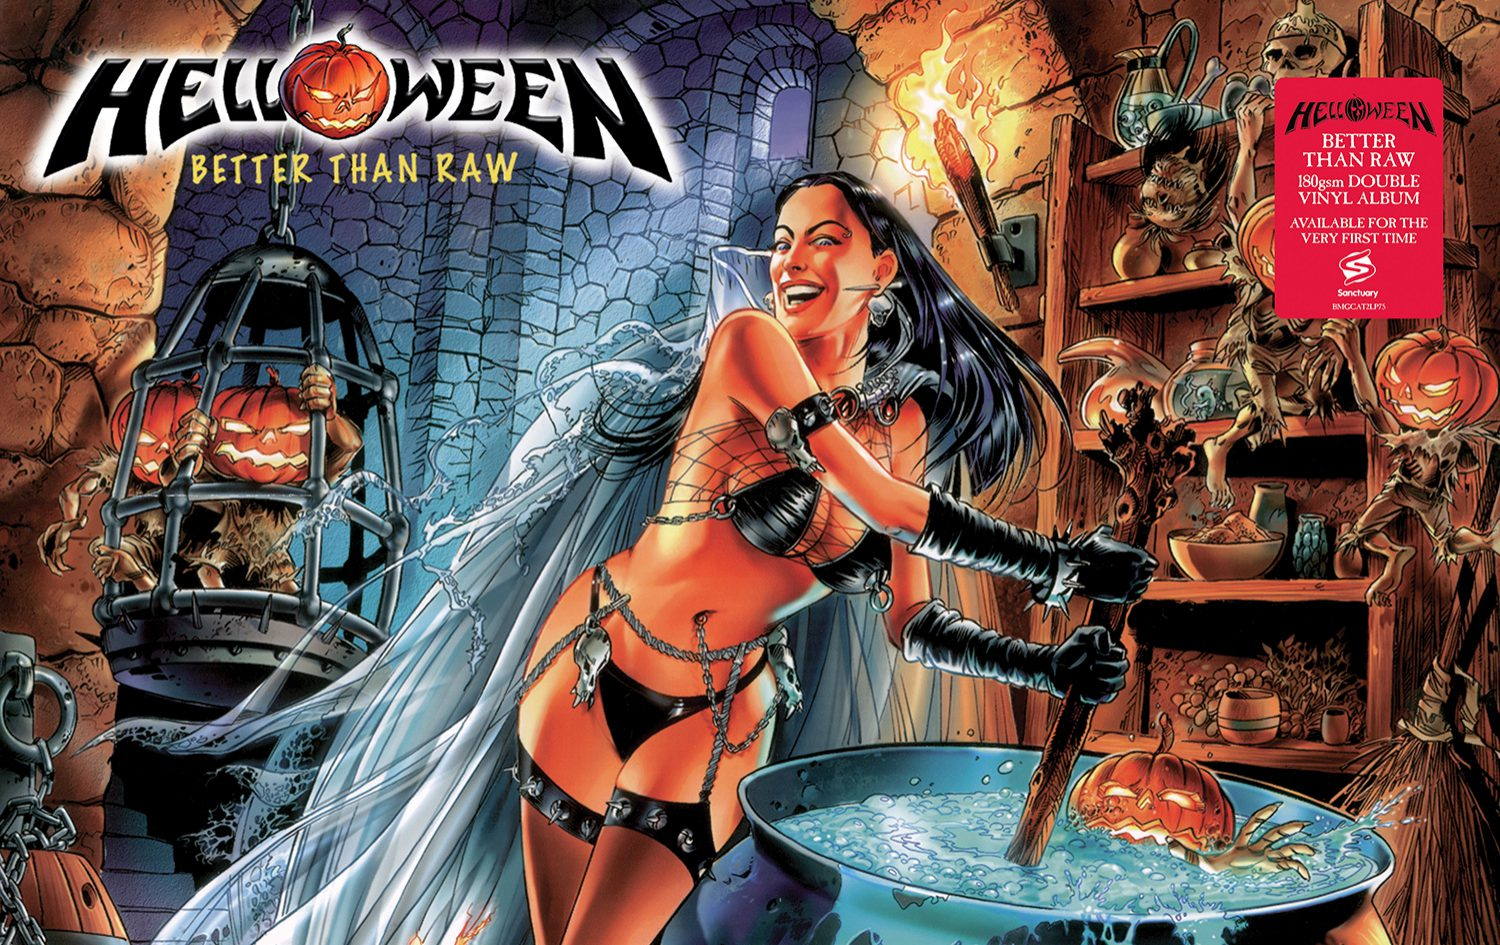 Helloween Better Than Raw Featured Image